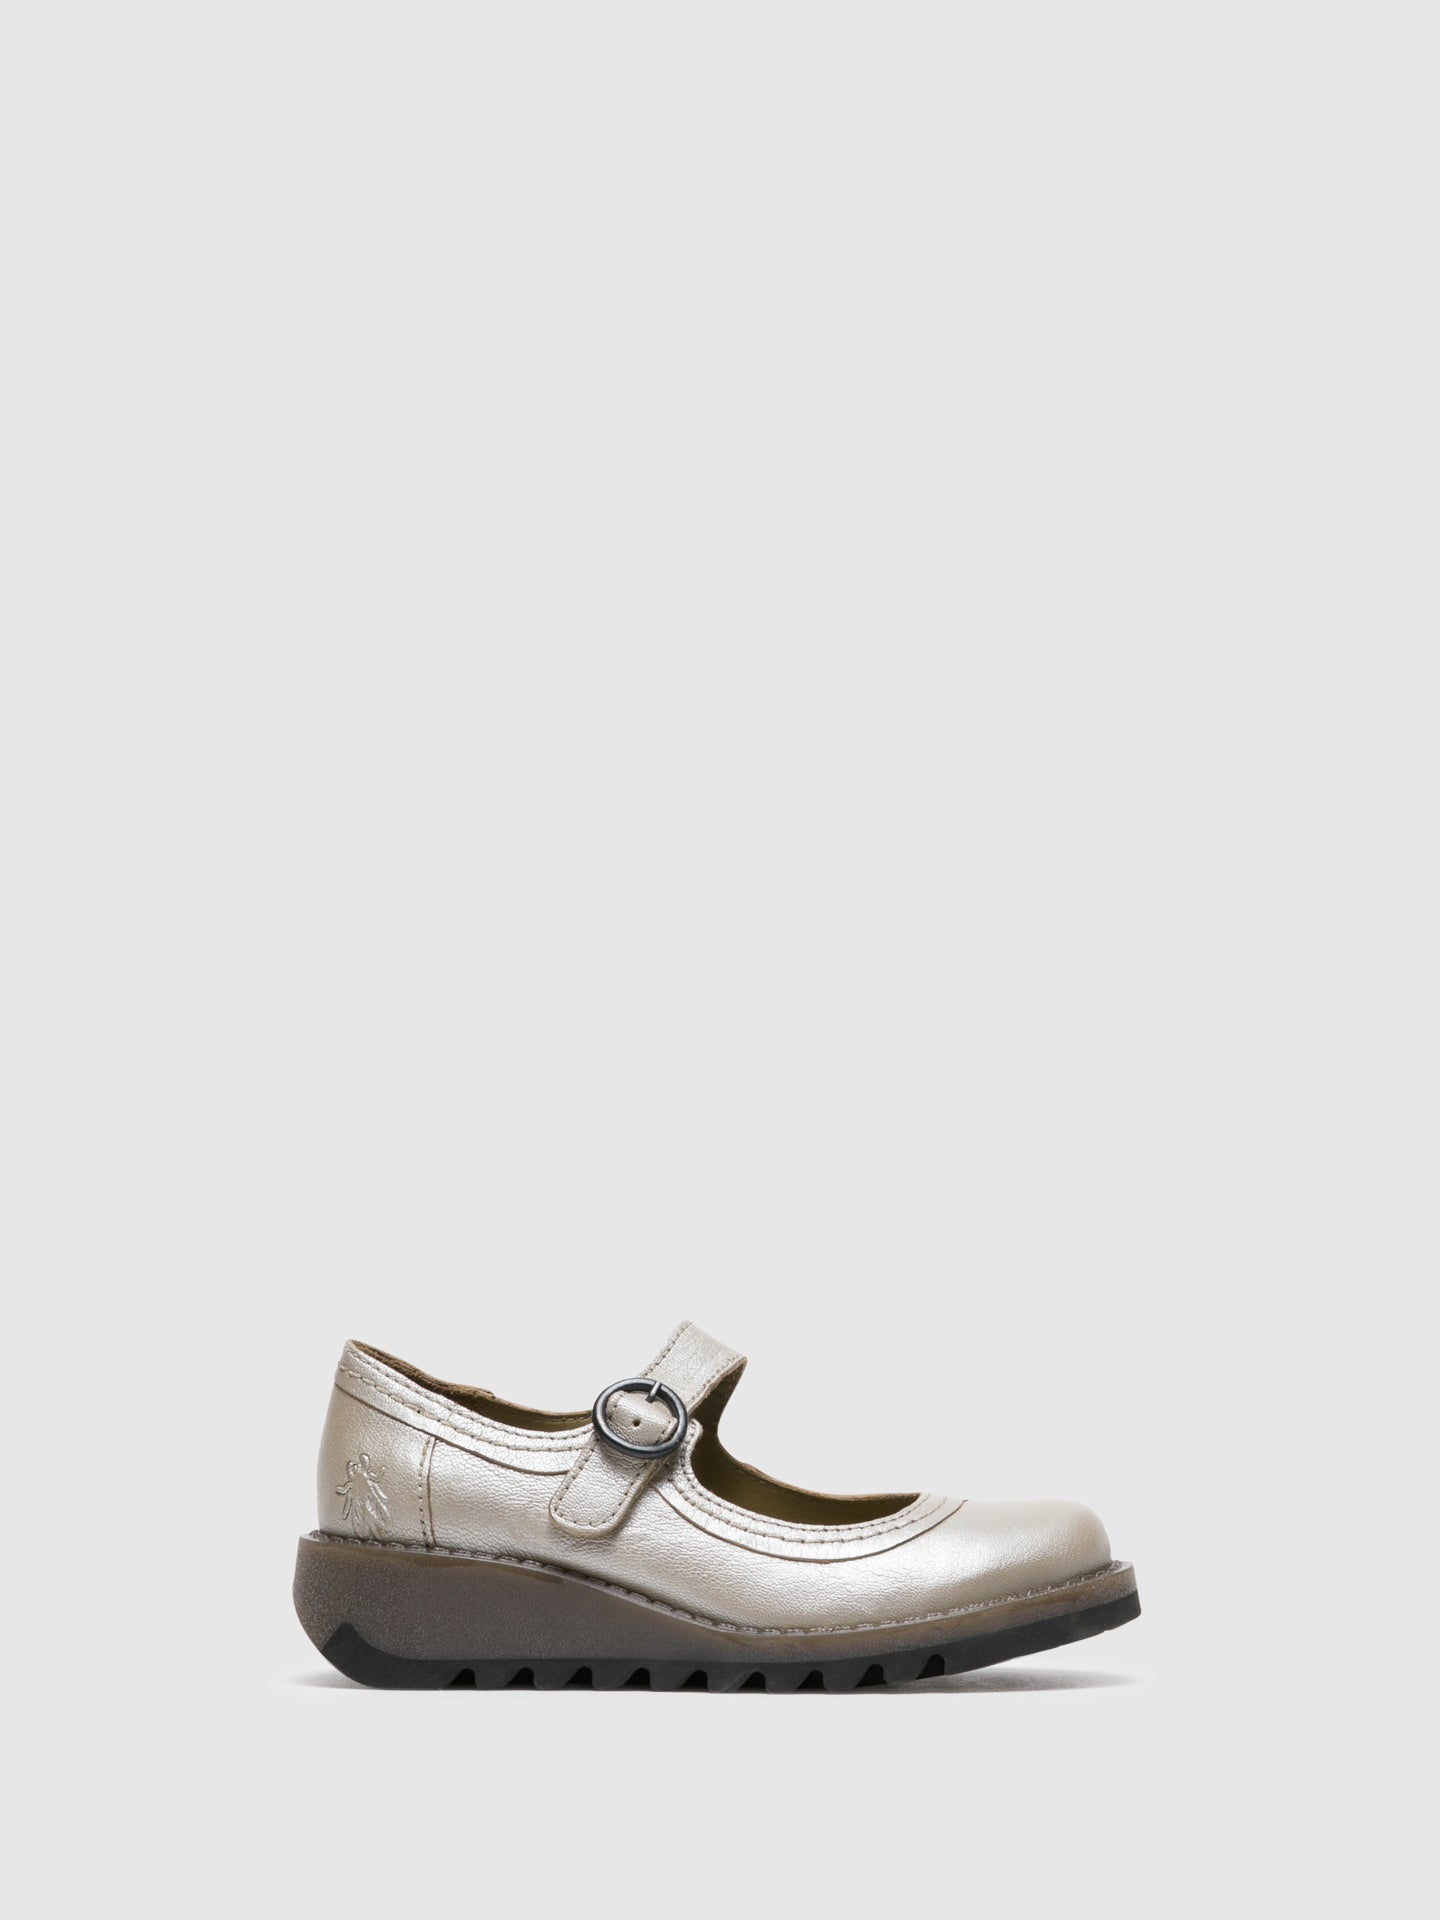 Fly London Silver Monk Shoes